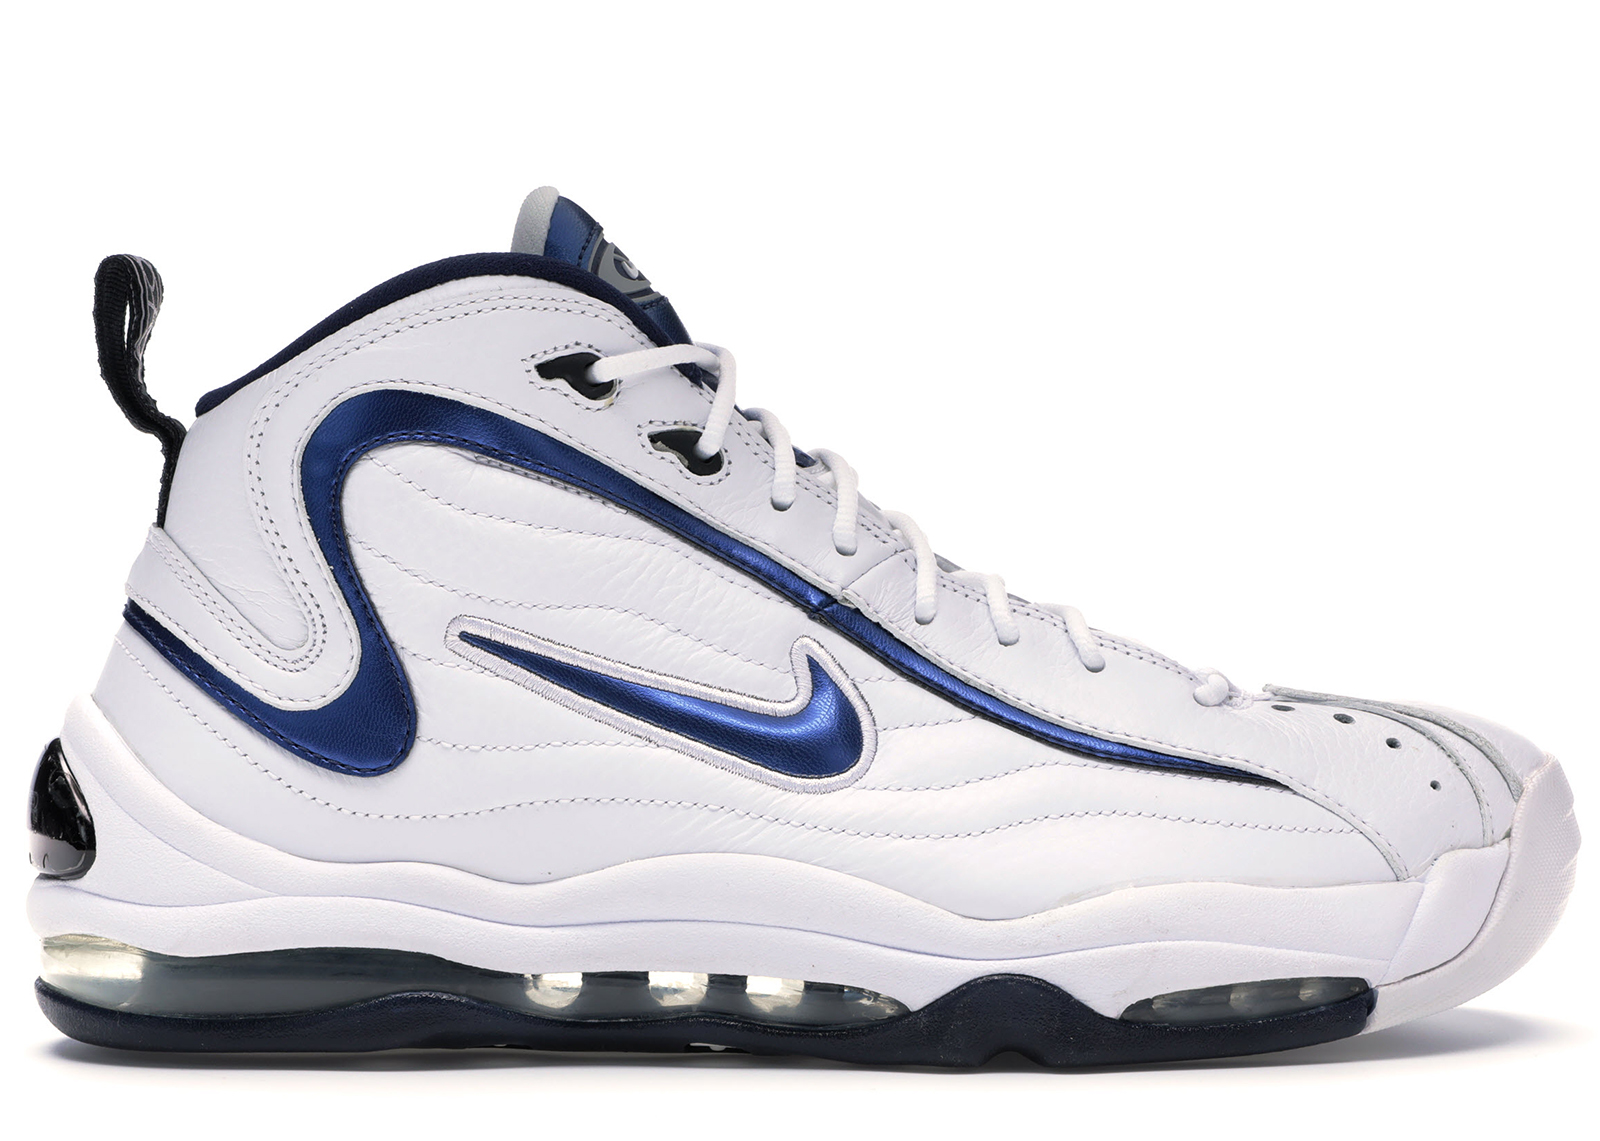 Nike Air Total Max Uptempo LE WhiteMidnight Navy,cheap